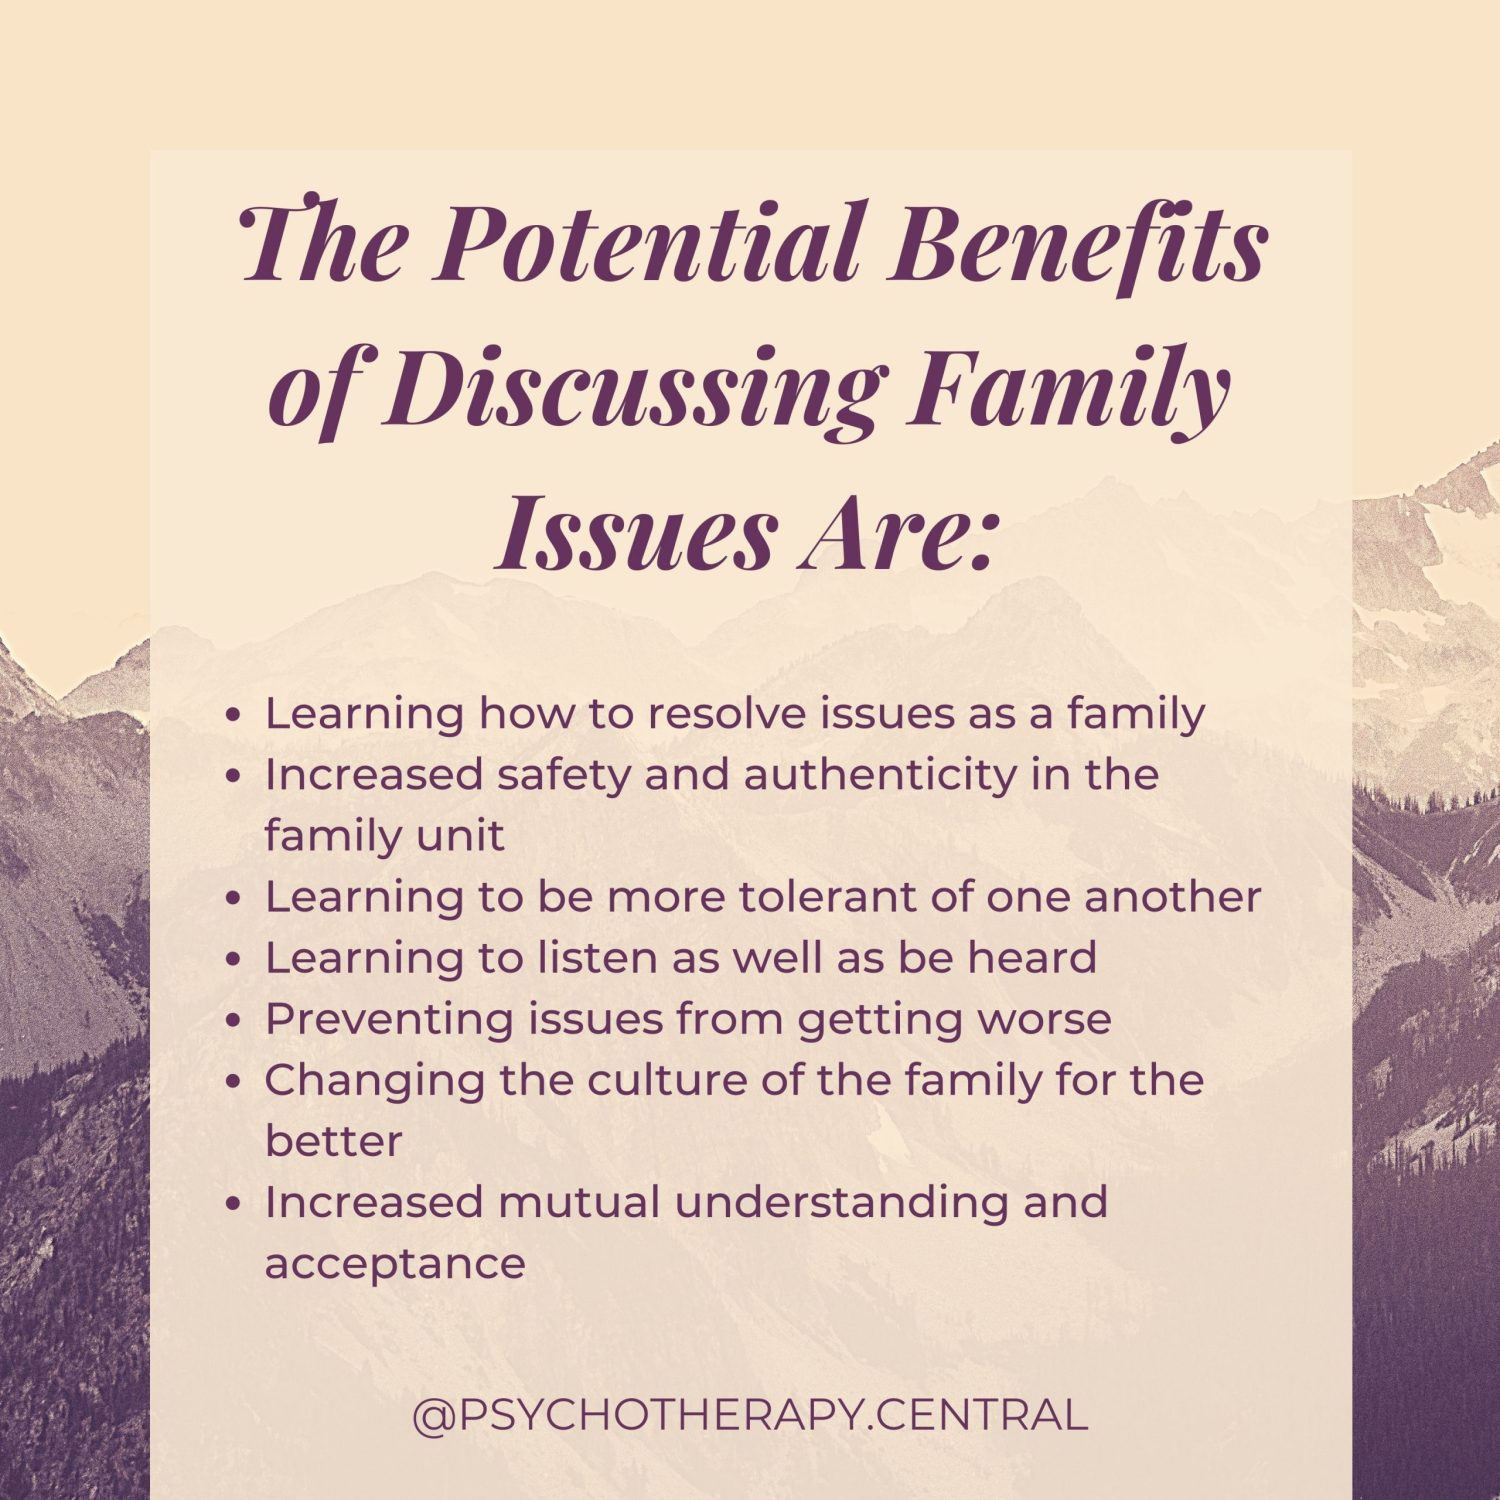 The Potential Benefits of Discussing Family Issues Are